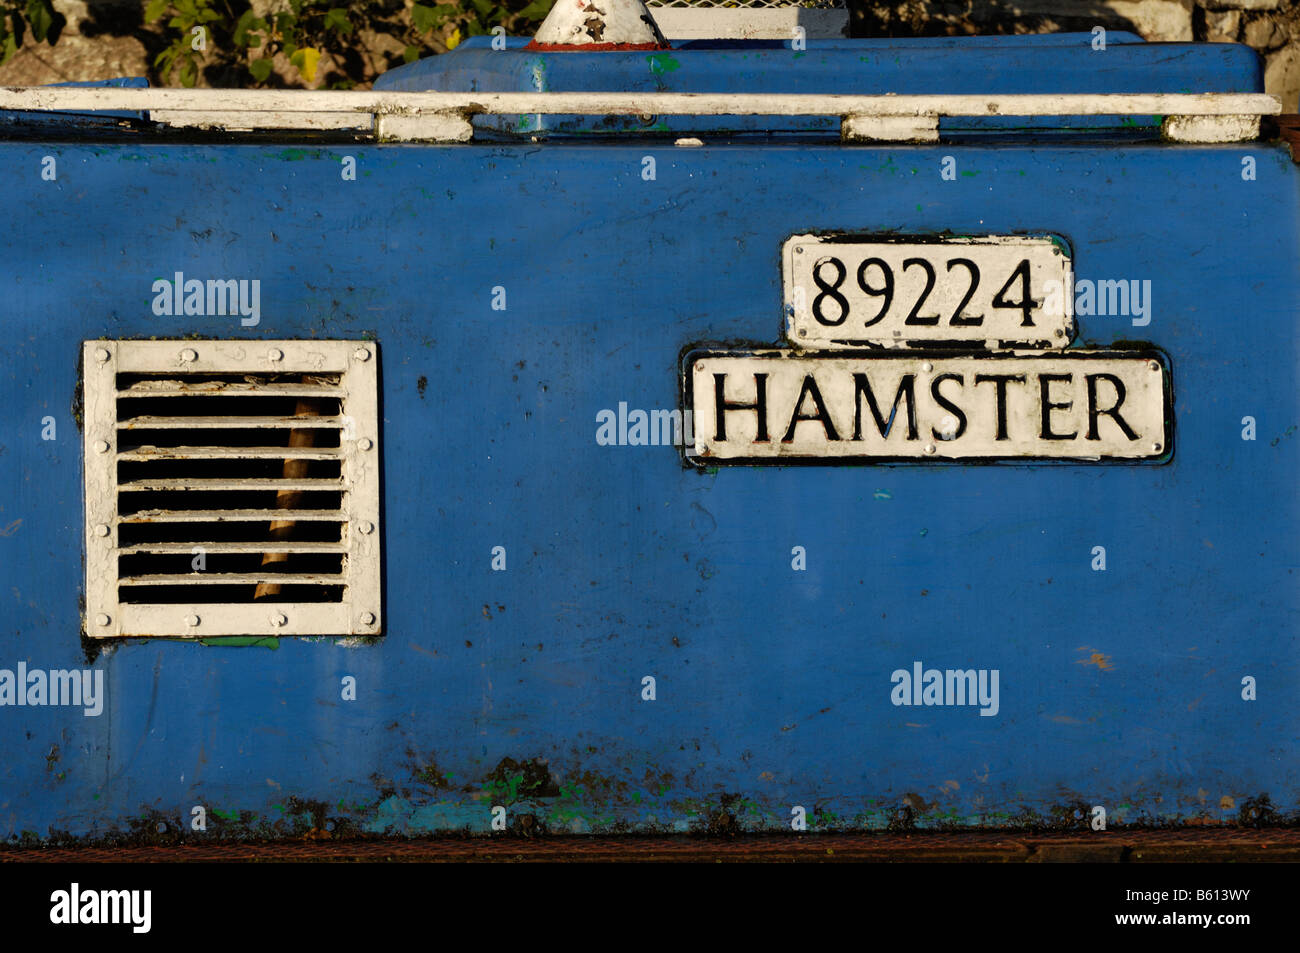 peeling paint and rust on side of english canal-boat, with nameplate